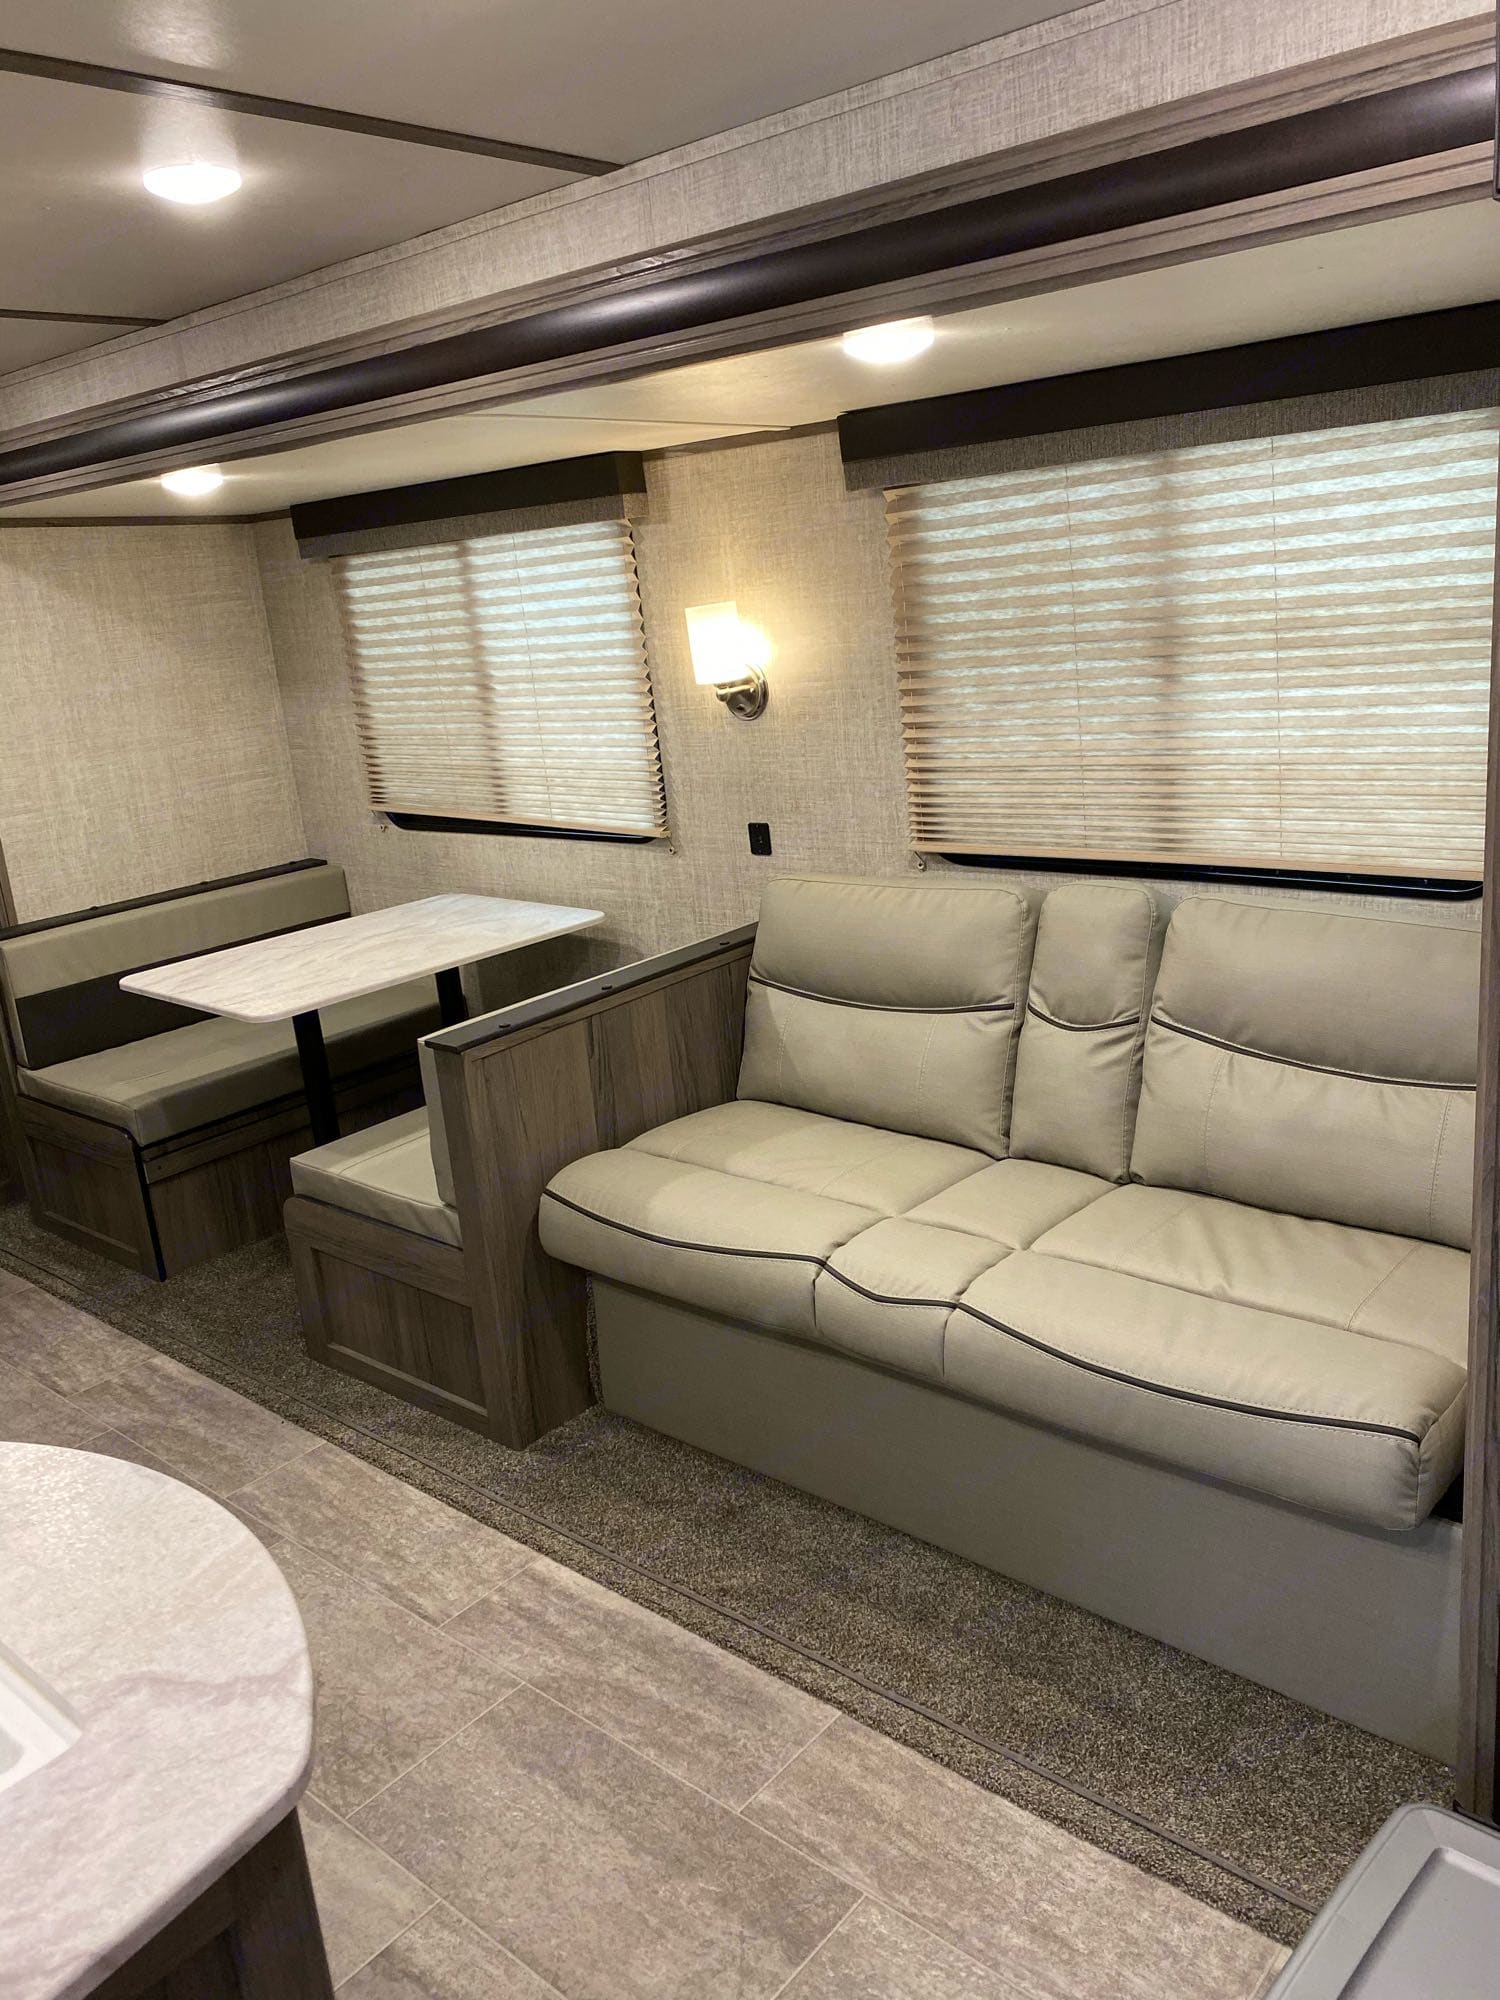 Fold out couch and dinette. Gulf Stream Amerilite 2020